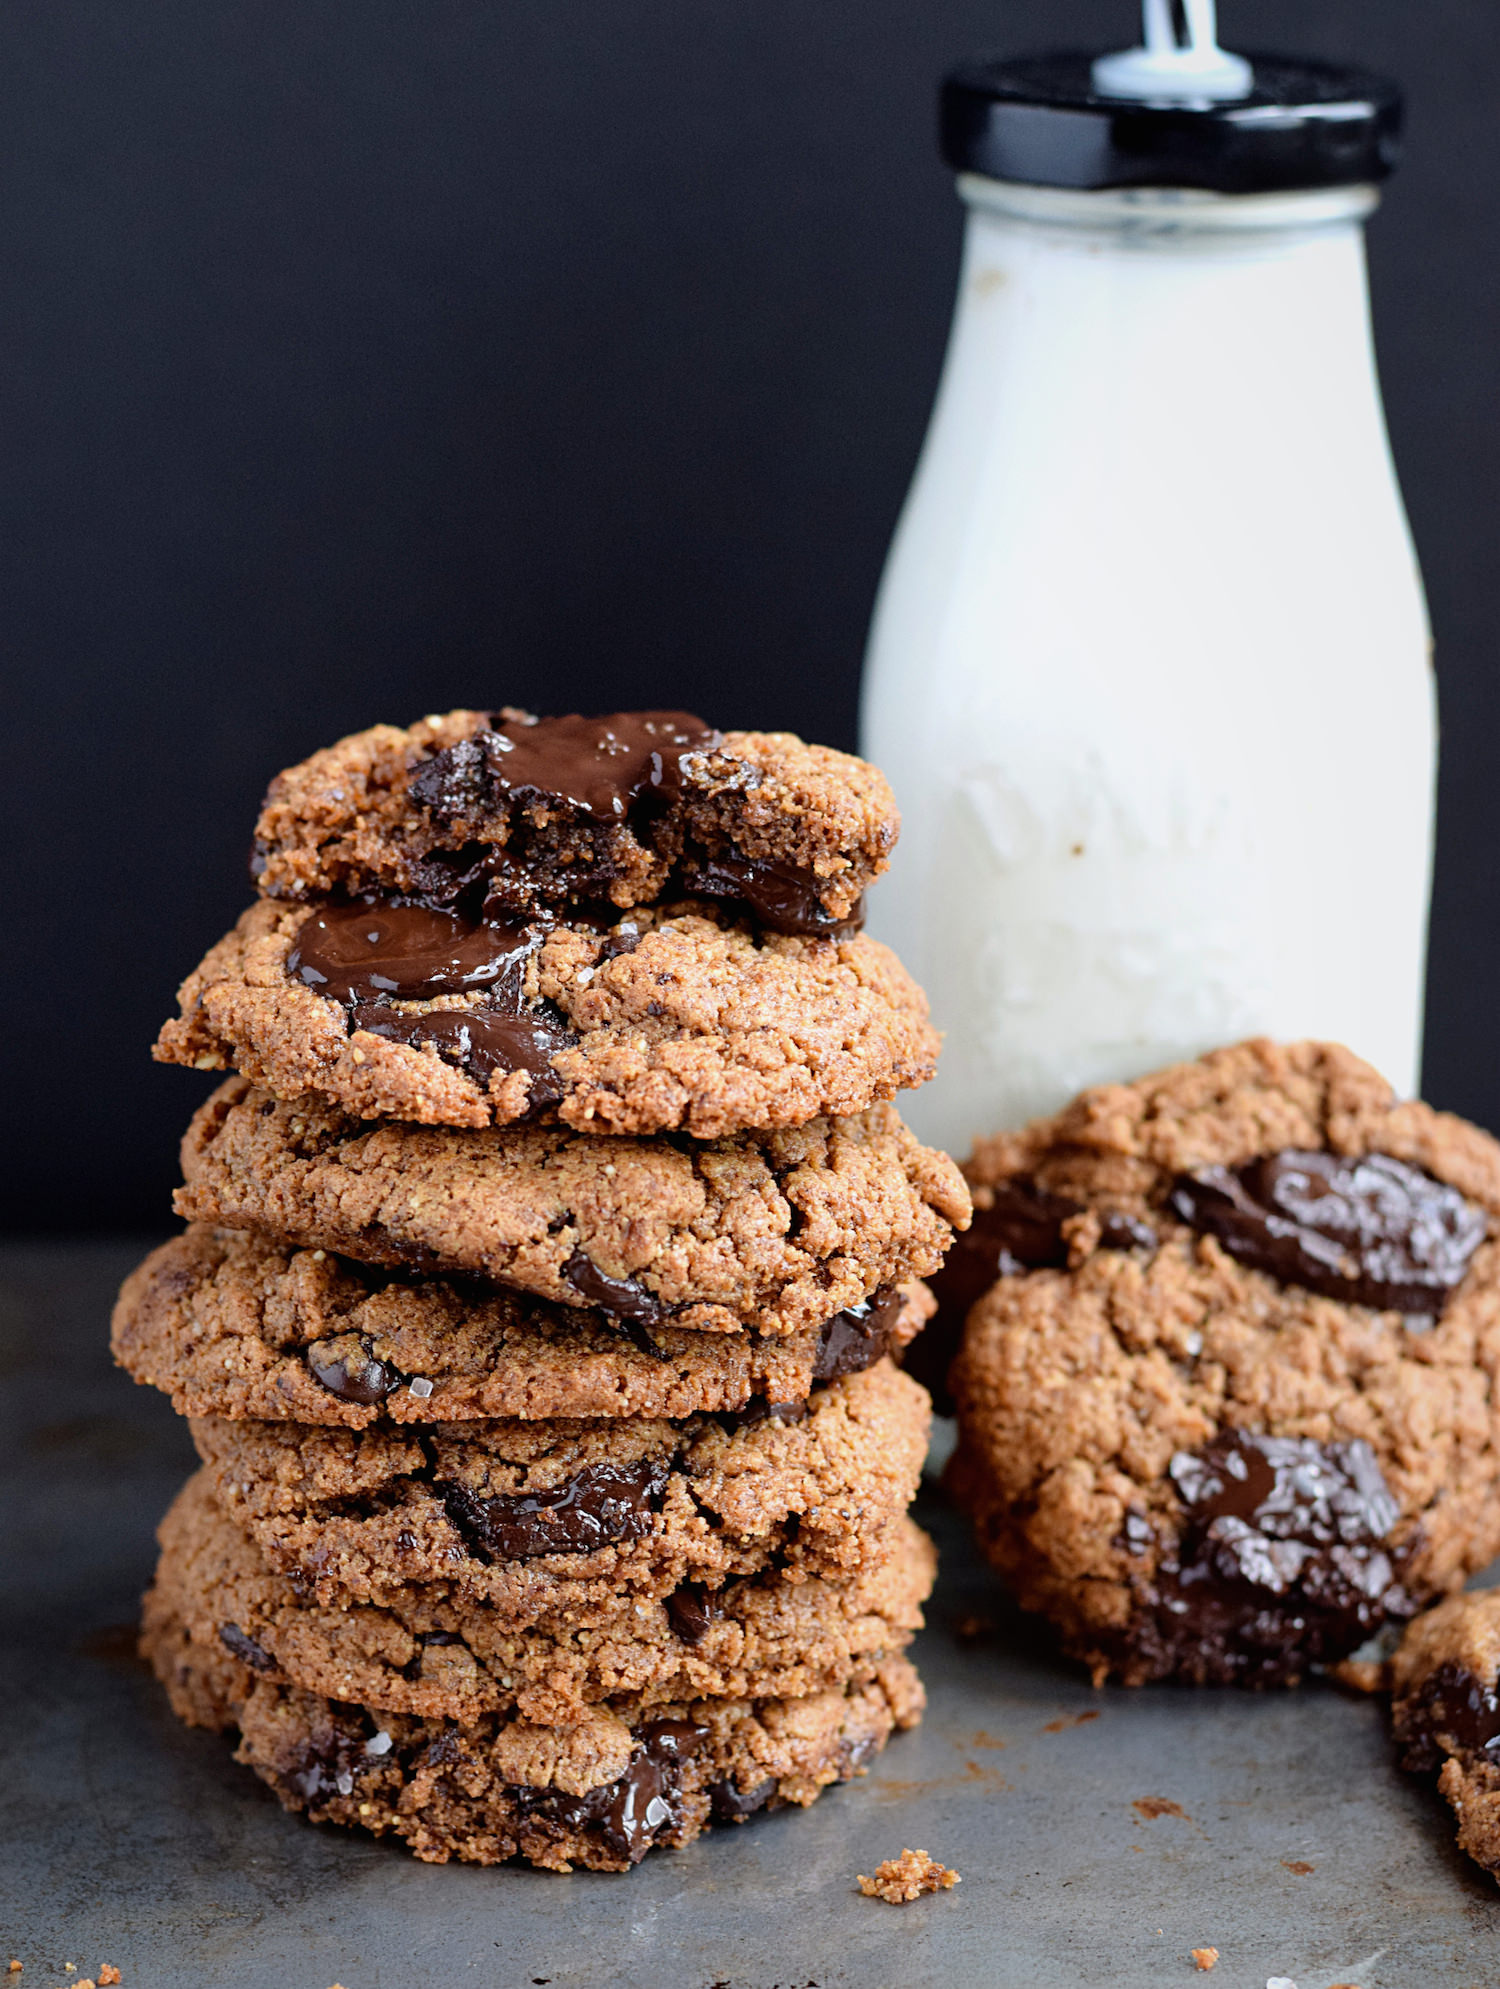 Wholesome Flourless Almond Butter Cookies – soft, chewy cookies loaded with chocolate chunks made without any gluten, dairy, oil, or refined sugars. Seriously addictive!   trufflesandtrends.com